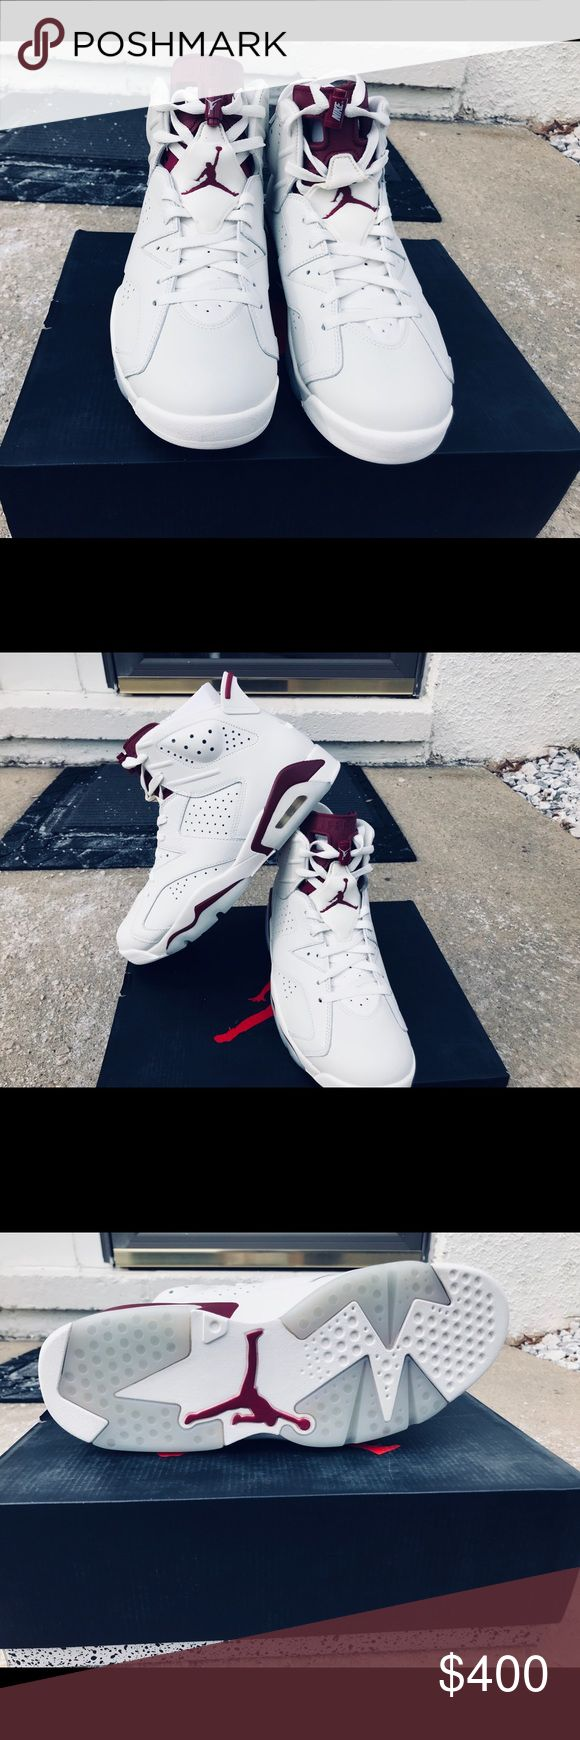 Jordan Retro 6's Air Jordan Retro 6's                                                       ColorWay: Maroon, Off-White Condition: NEW Size: 12 Price: 400$ or Best Offer Air Jordan Shoes Athletic Shoes